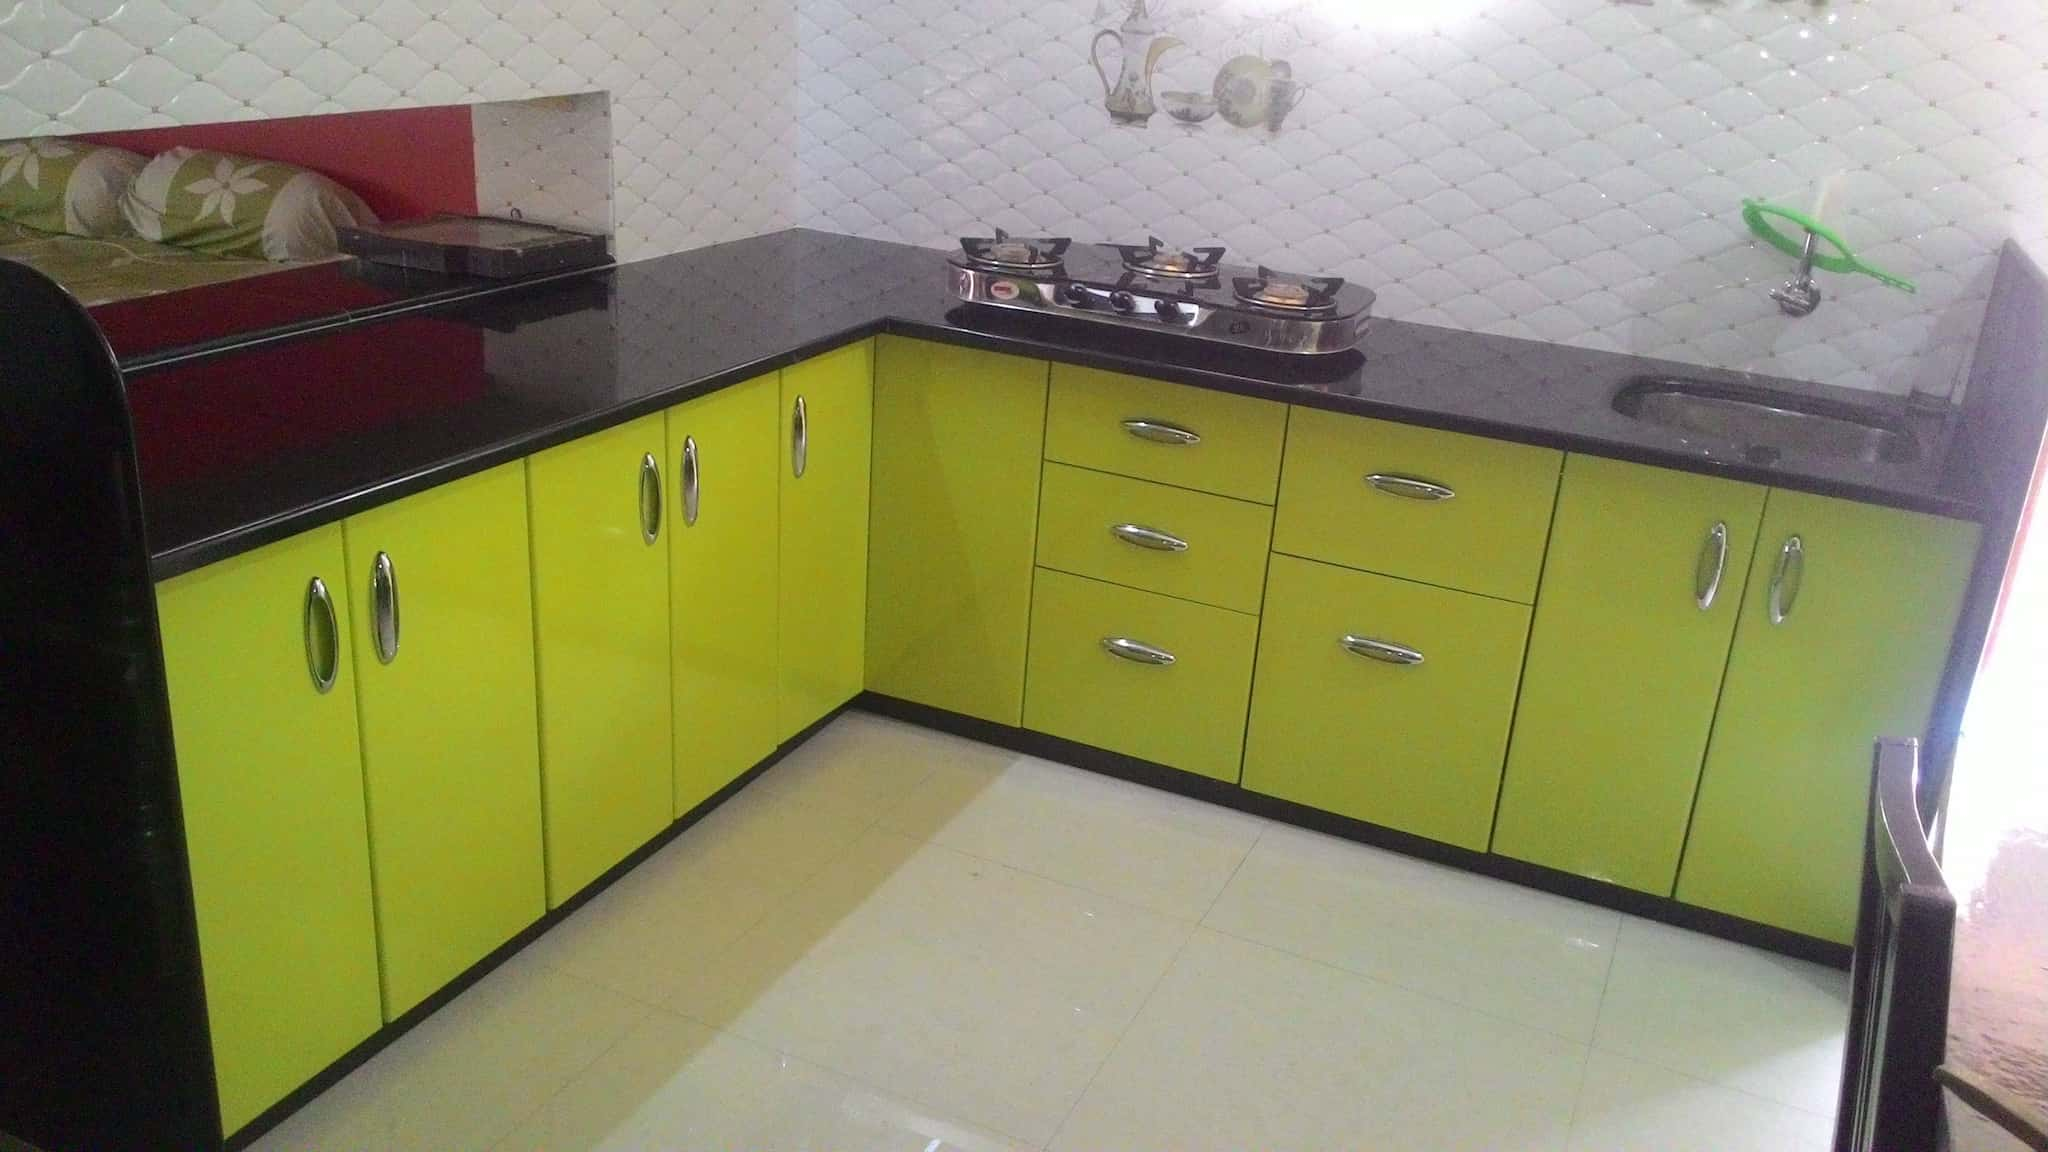 hs ncr in urban price l acrylic ucl laminate shape finish gloss casa neetu rs kitchen delhi hi modular kitchens